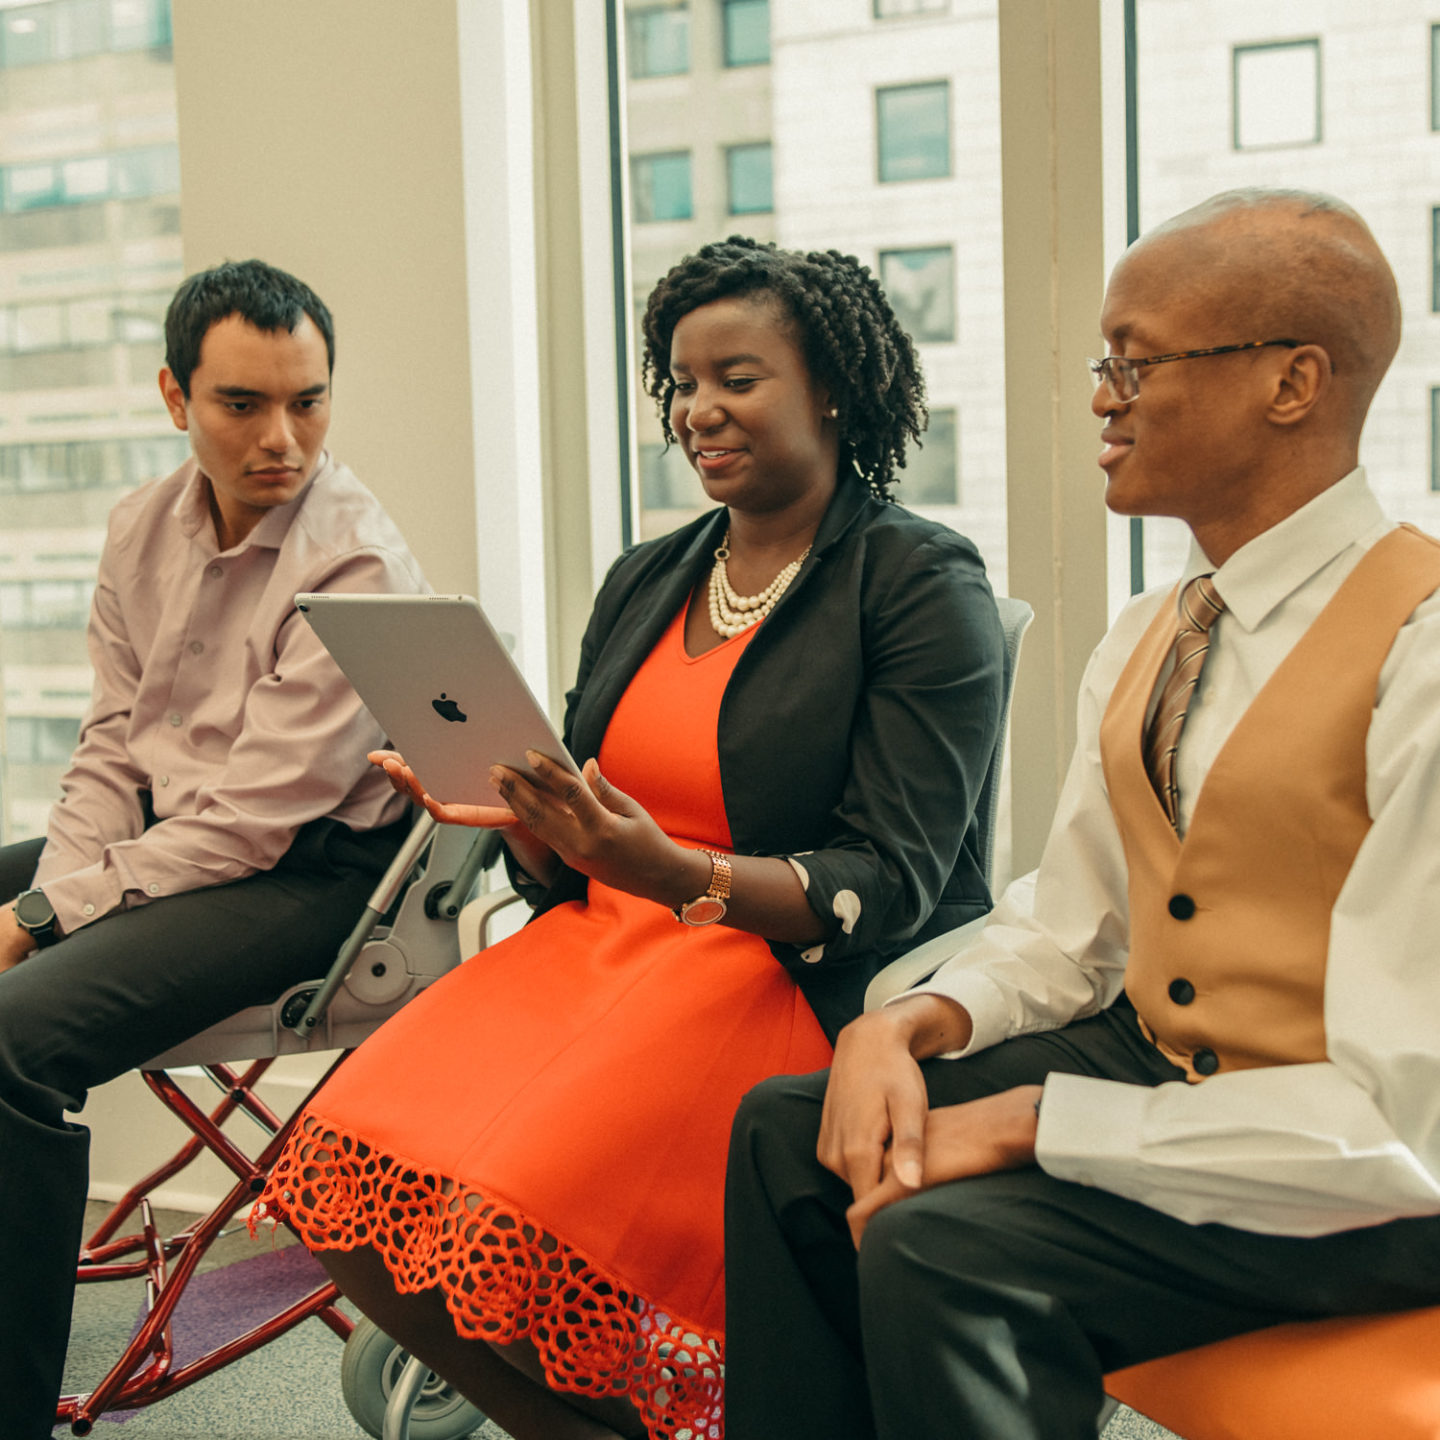 Three diverse individuals sit down next to each other while referencing an iPad tablet in the center of the group.